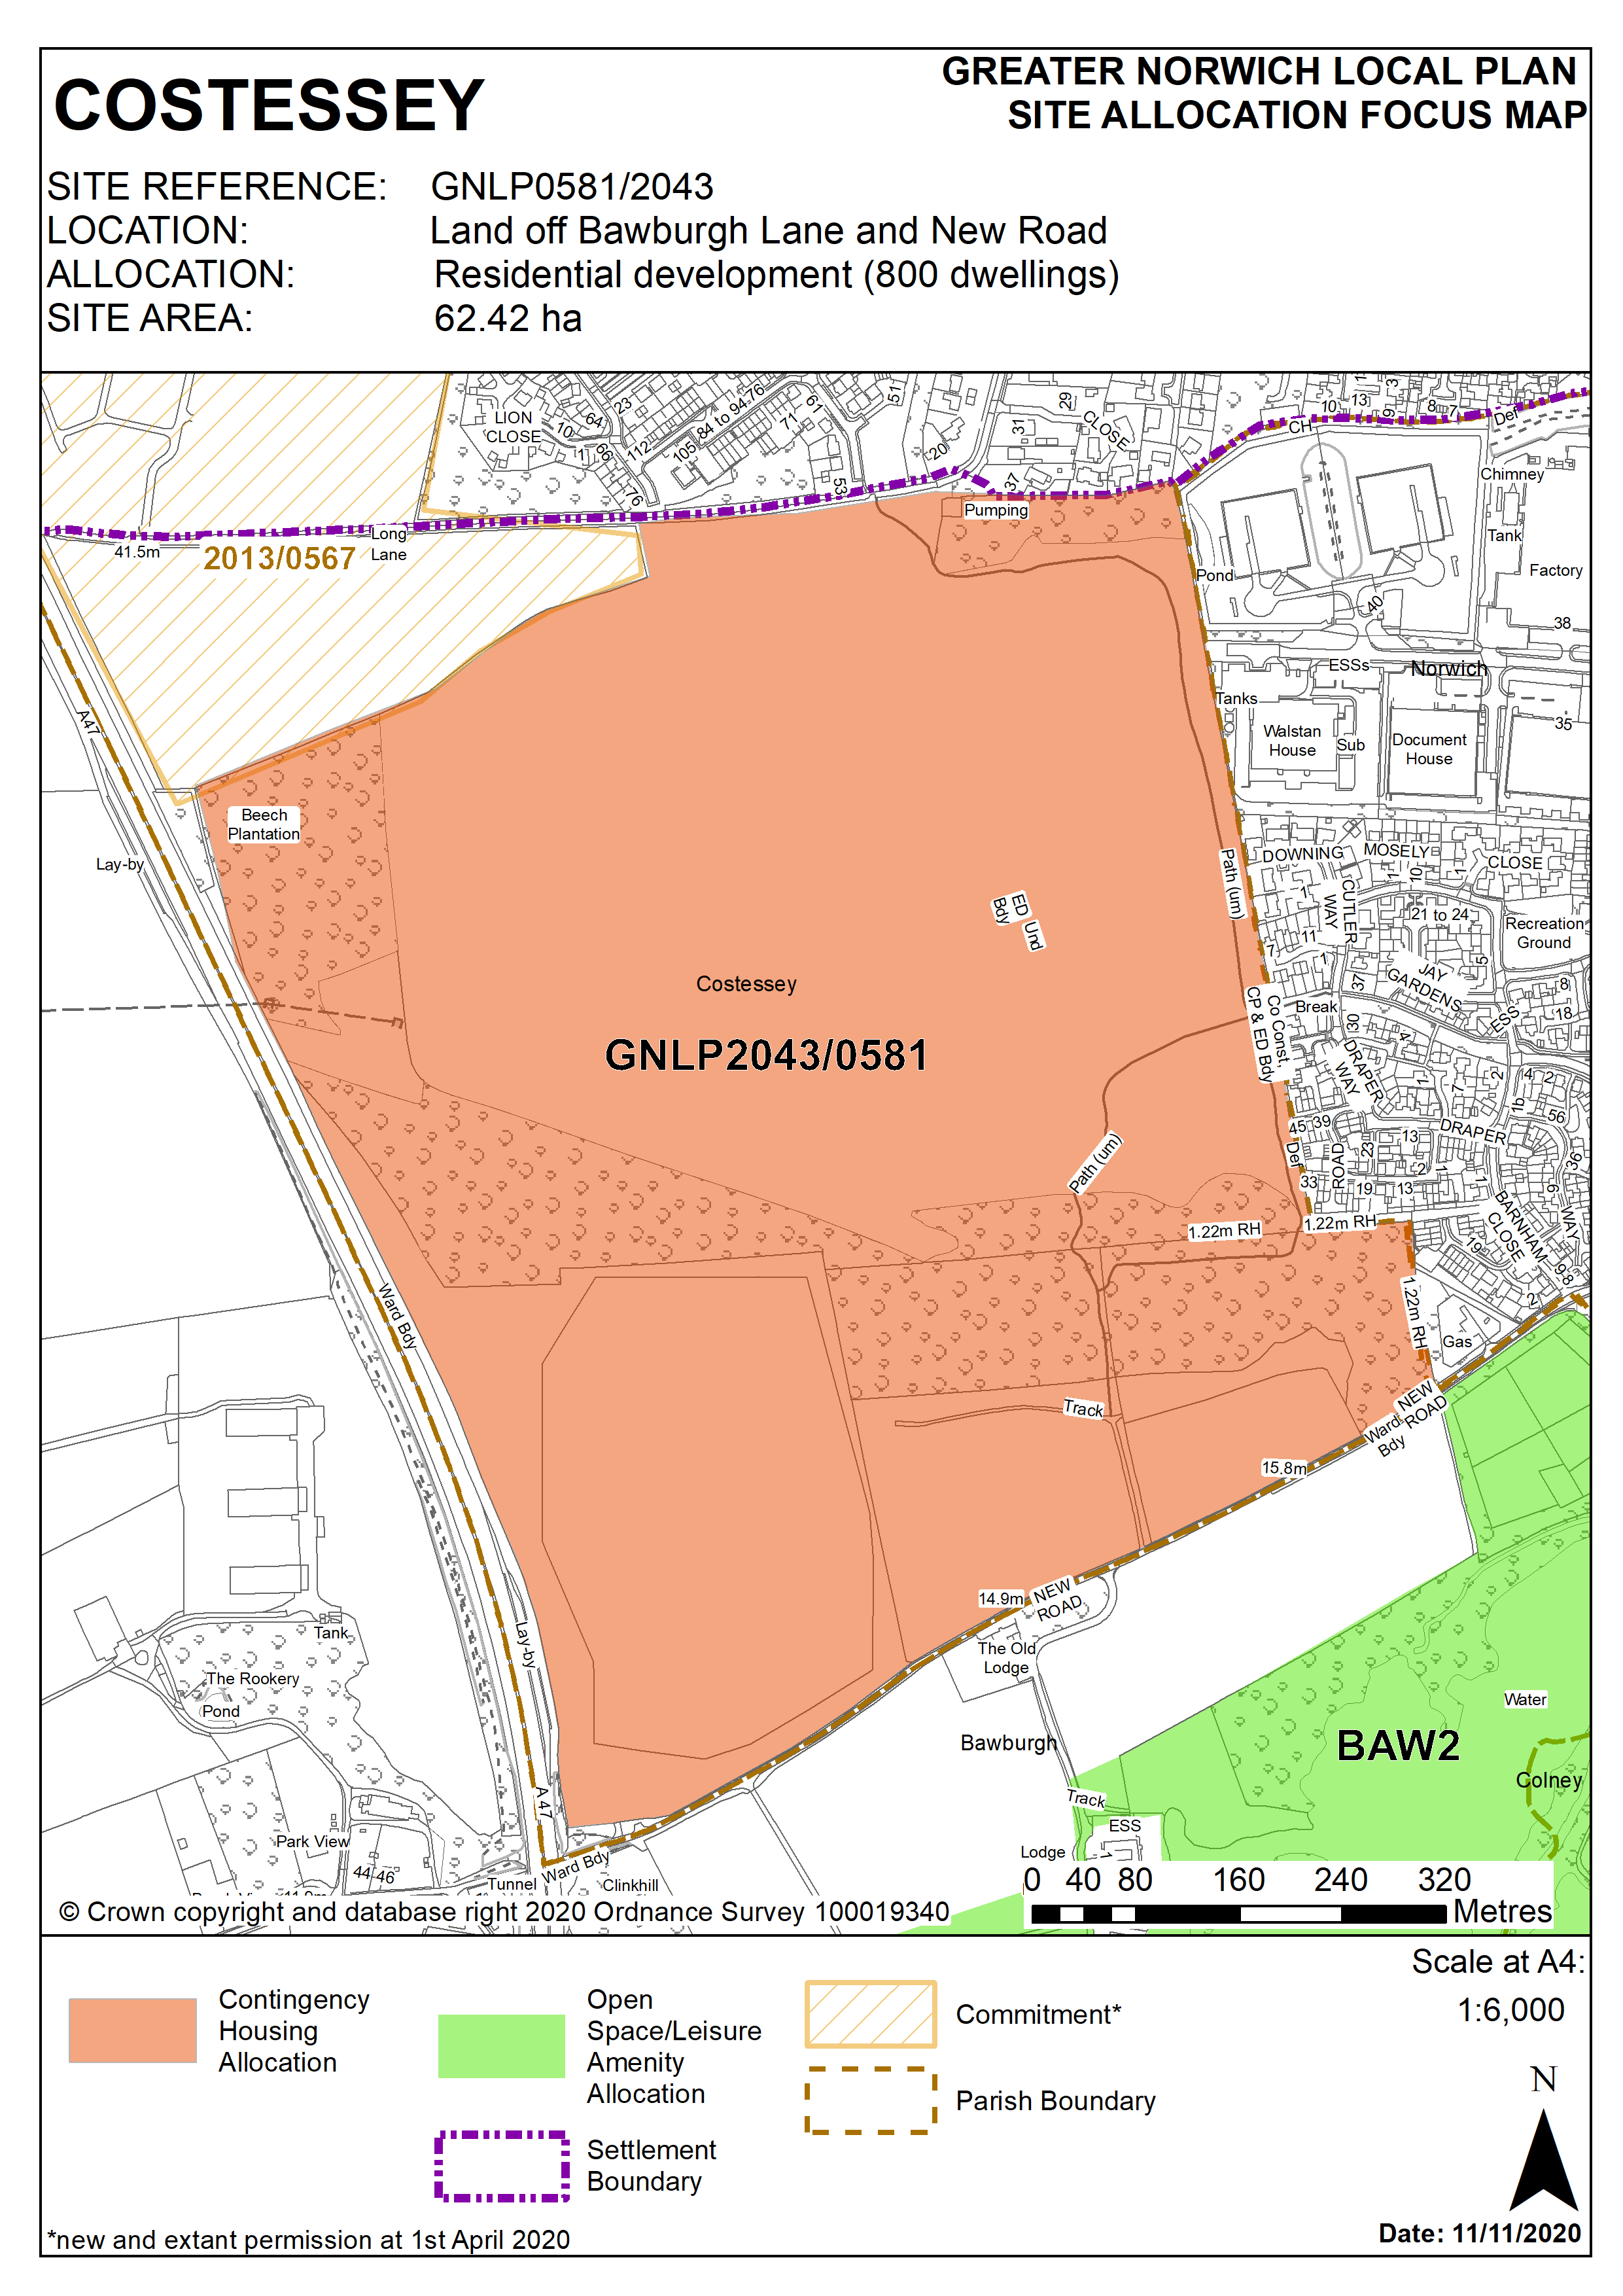 GNLP0581/2043 Policy Map